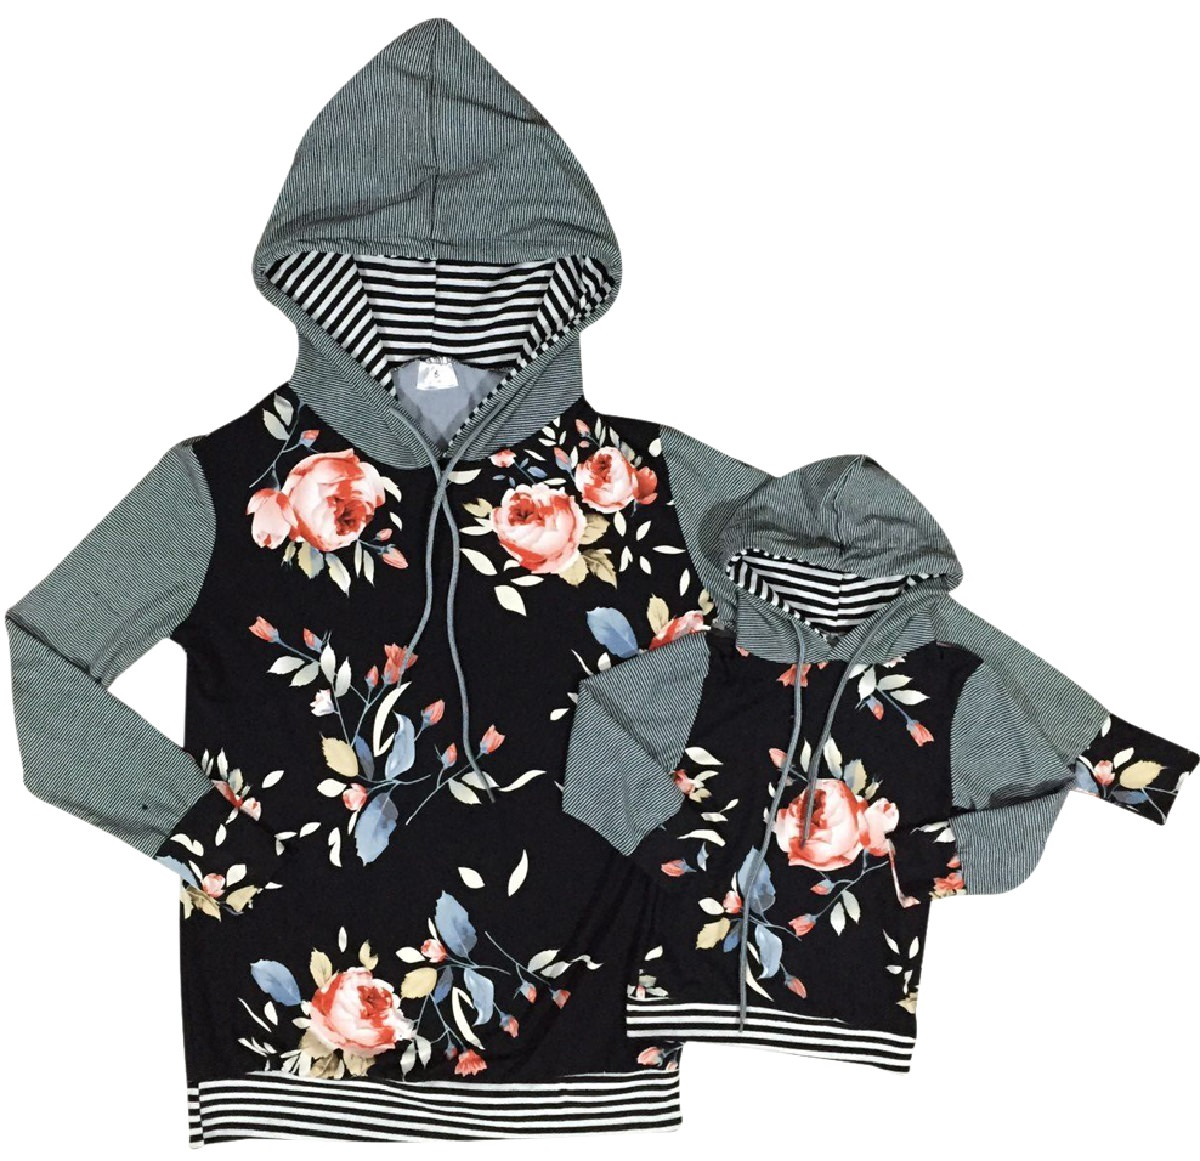 Women Long Sleeve Floral Print Cotton Woman Fashion Hoodie Sweater Gray M (900102HOODIE)